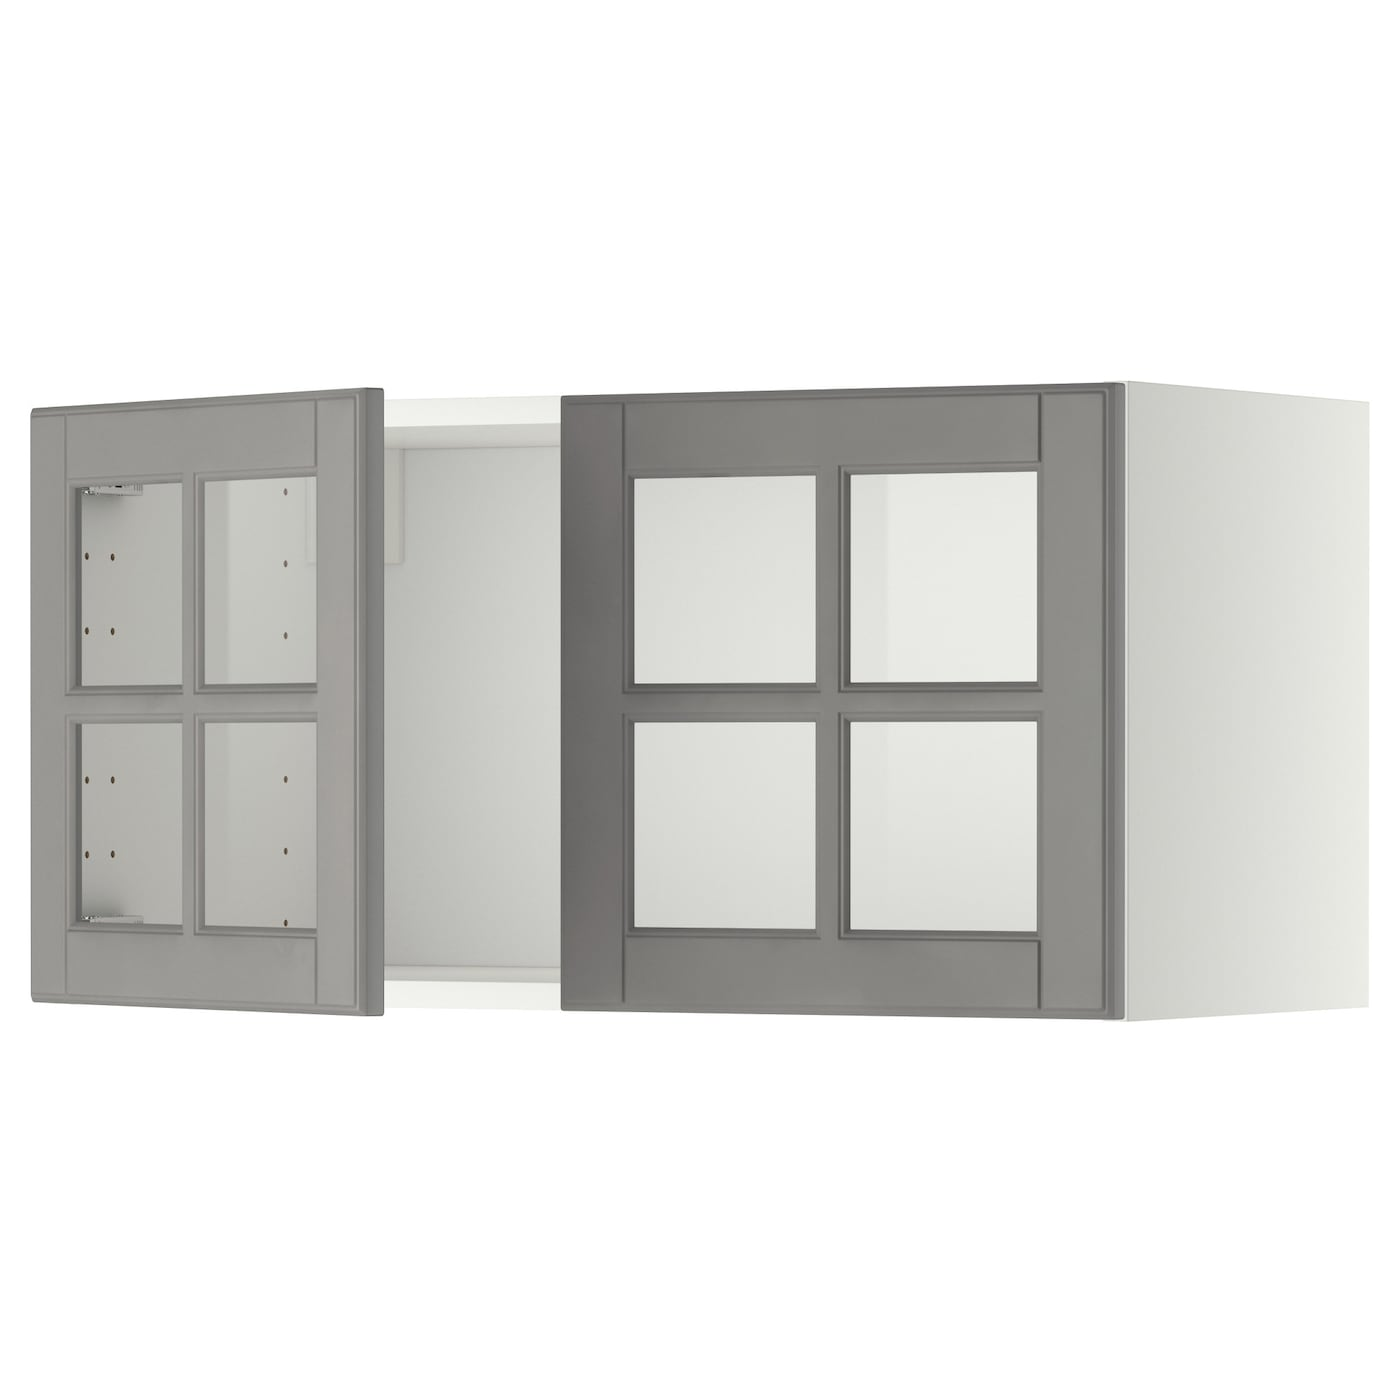 Metod Wall Cabinet With 2 Glass Doors Whitebodbyn Grey 80 X 40 Cm